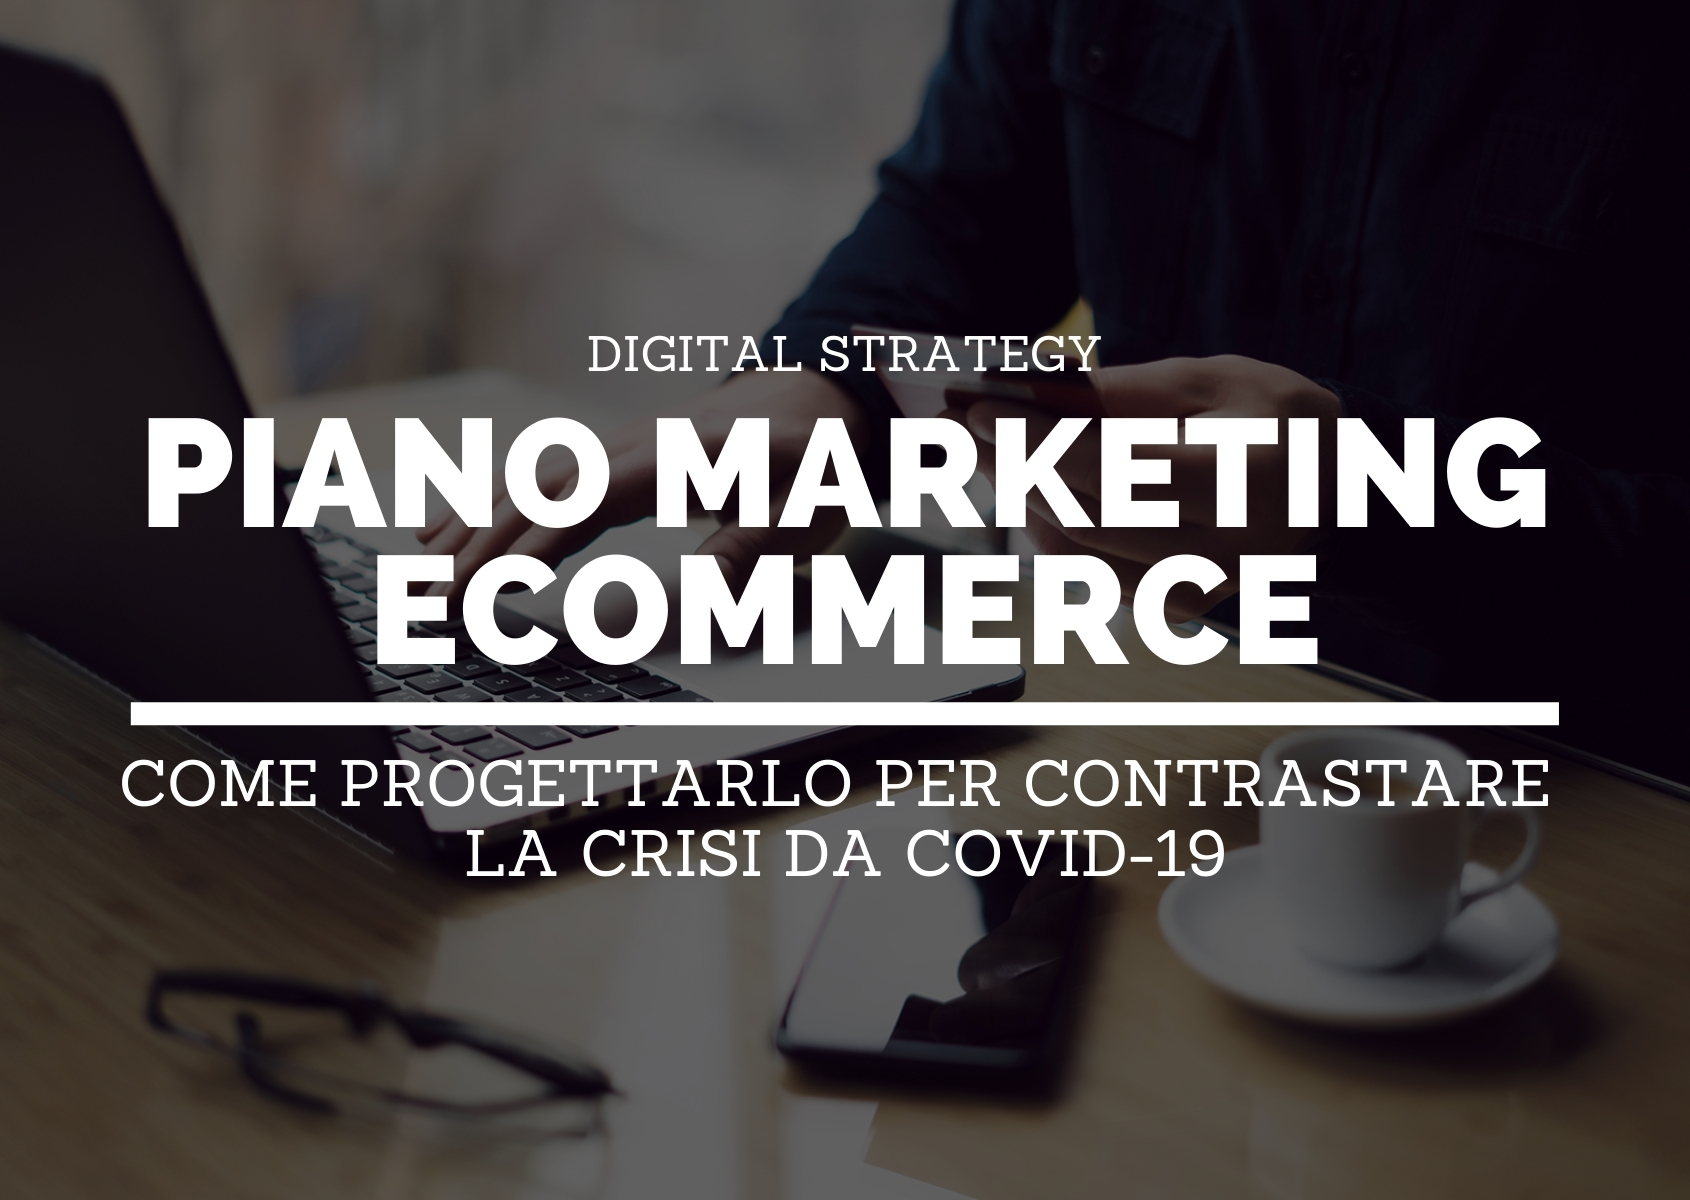 Piano marketing eCommerce: come progettarlo per contrastare la crisi da COVID-19